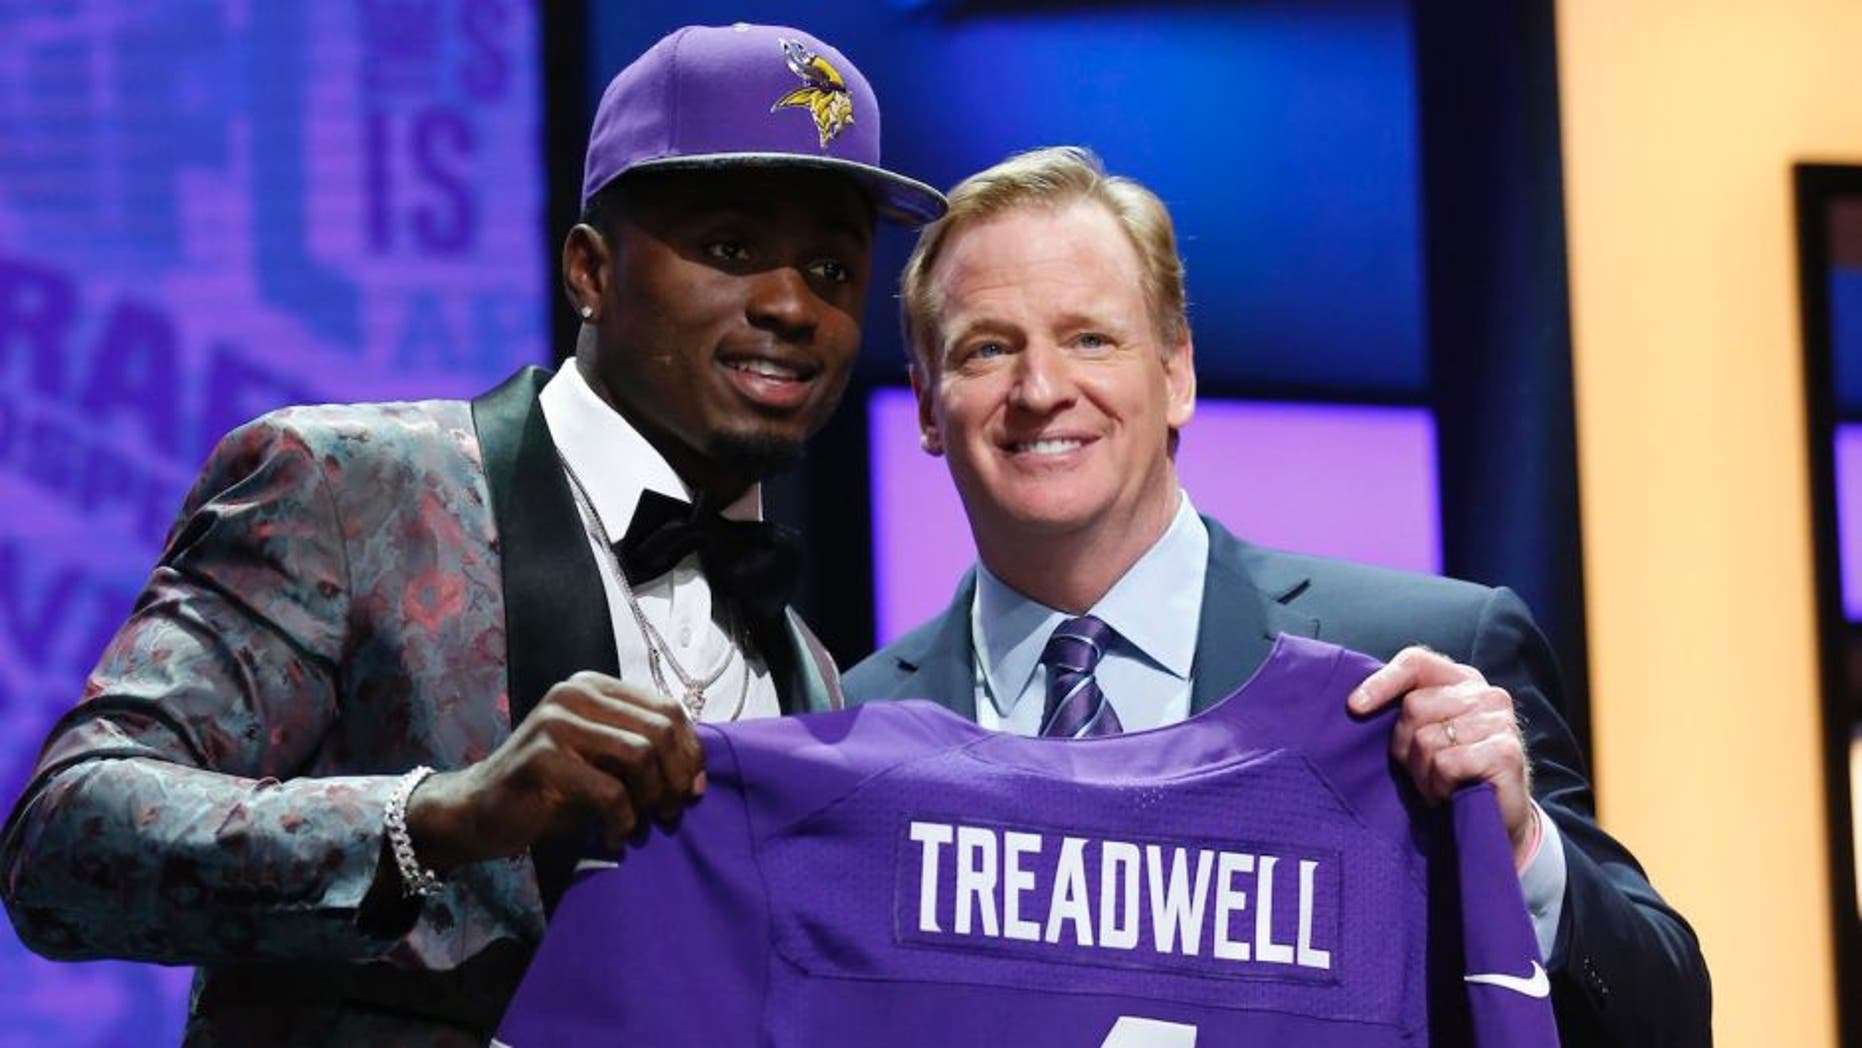 Apr 28, 2016; Chicago, IL, USA; Laquon Treadwell (Mississippi) with NFL commissioner Roger Goodell after being selected by the Minnesota Vikings as the number twenty-three overall pick in the first round of the 2016 NFL Draft at Auditorium Theatre. Mandatory Credit: Kamil Krzaczynski-USA TODAY Sports